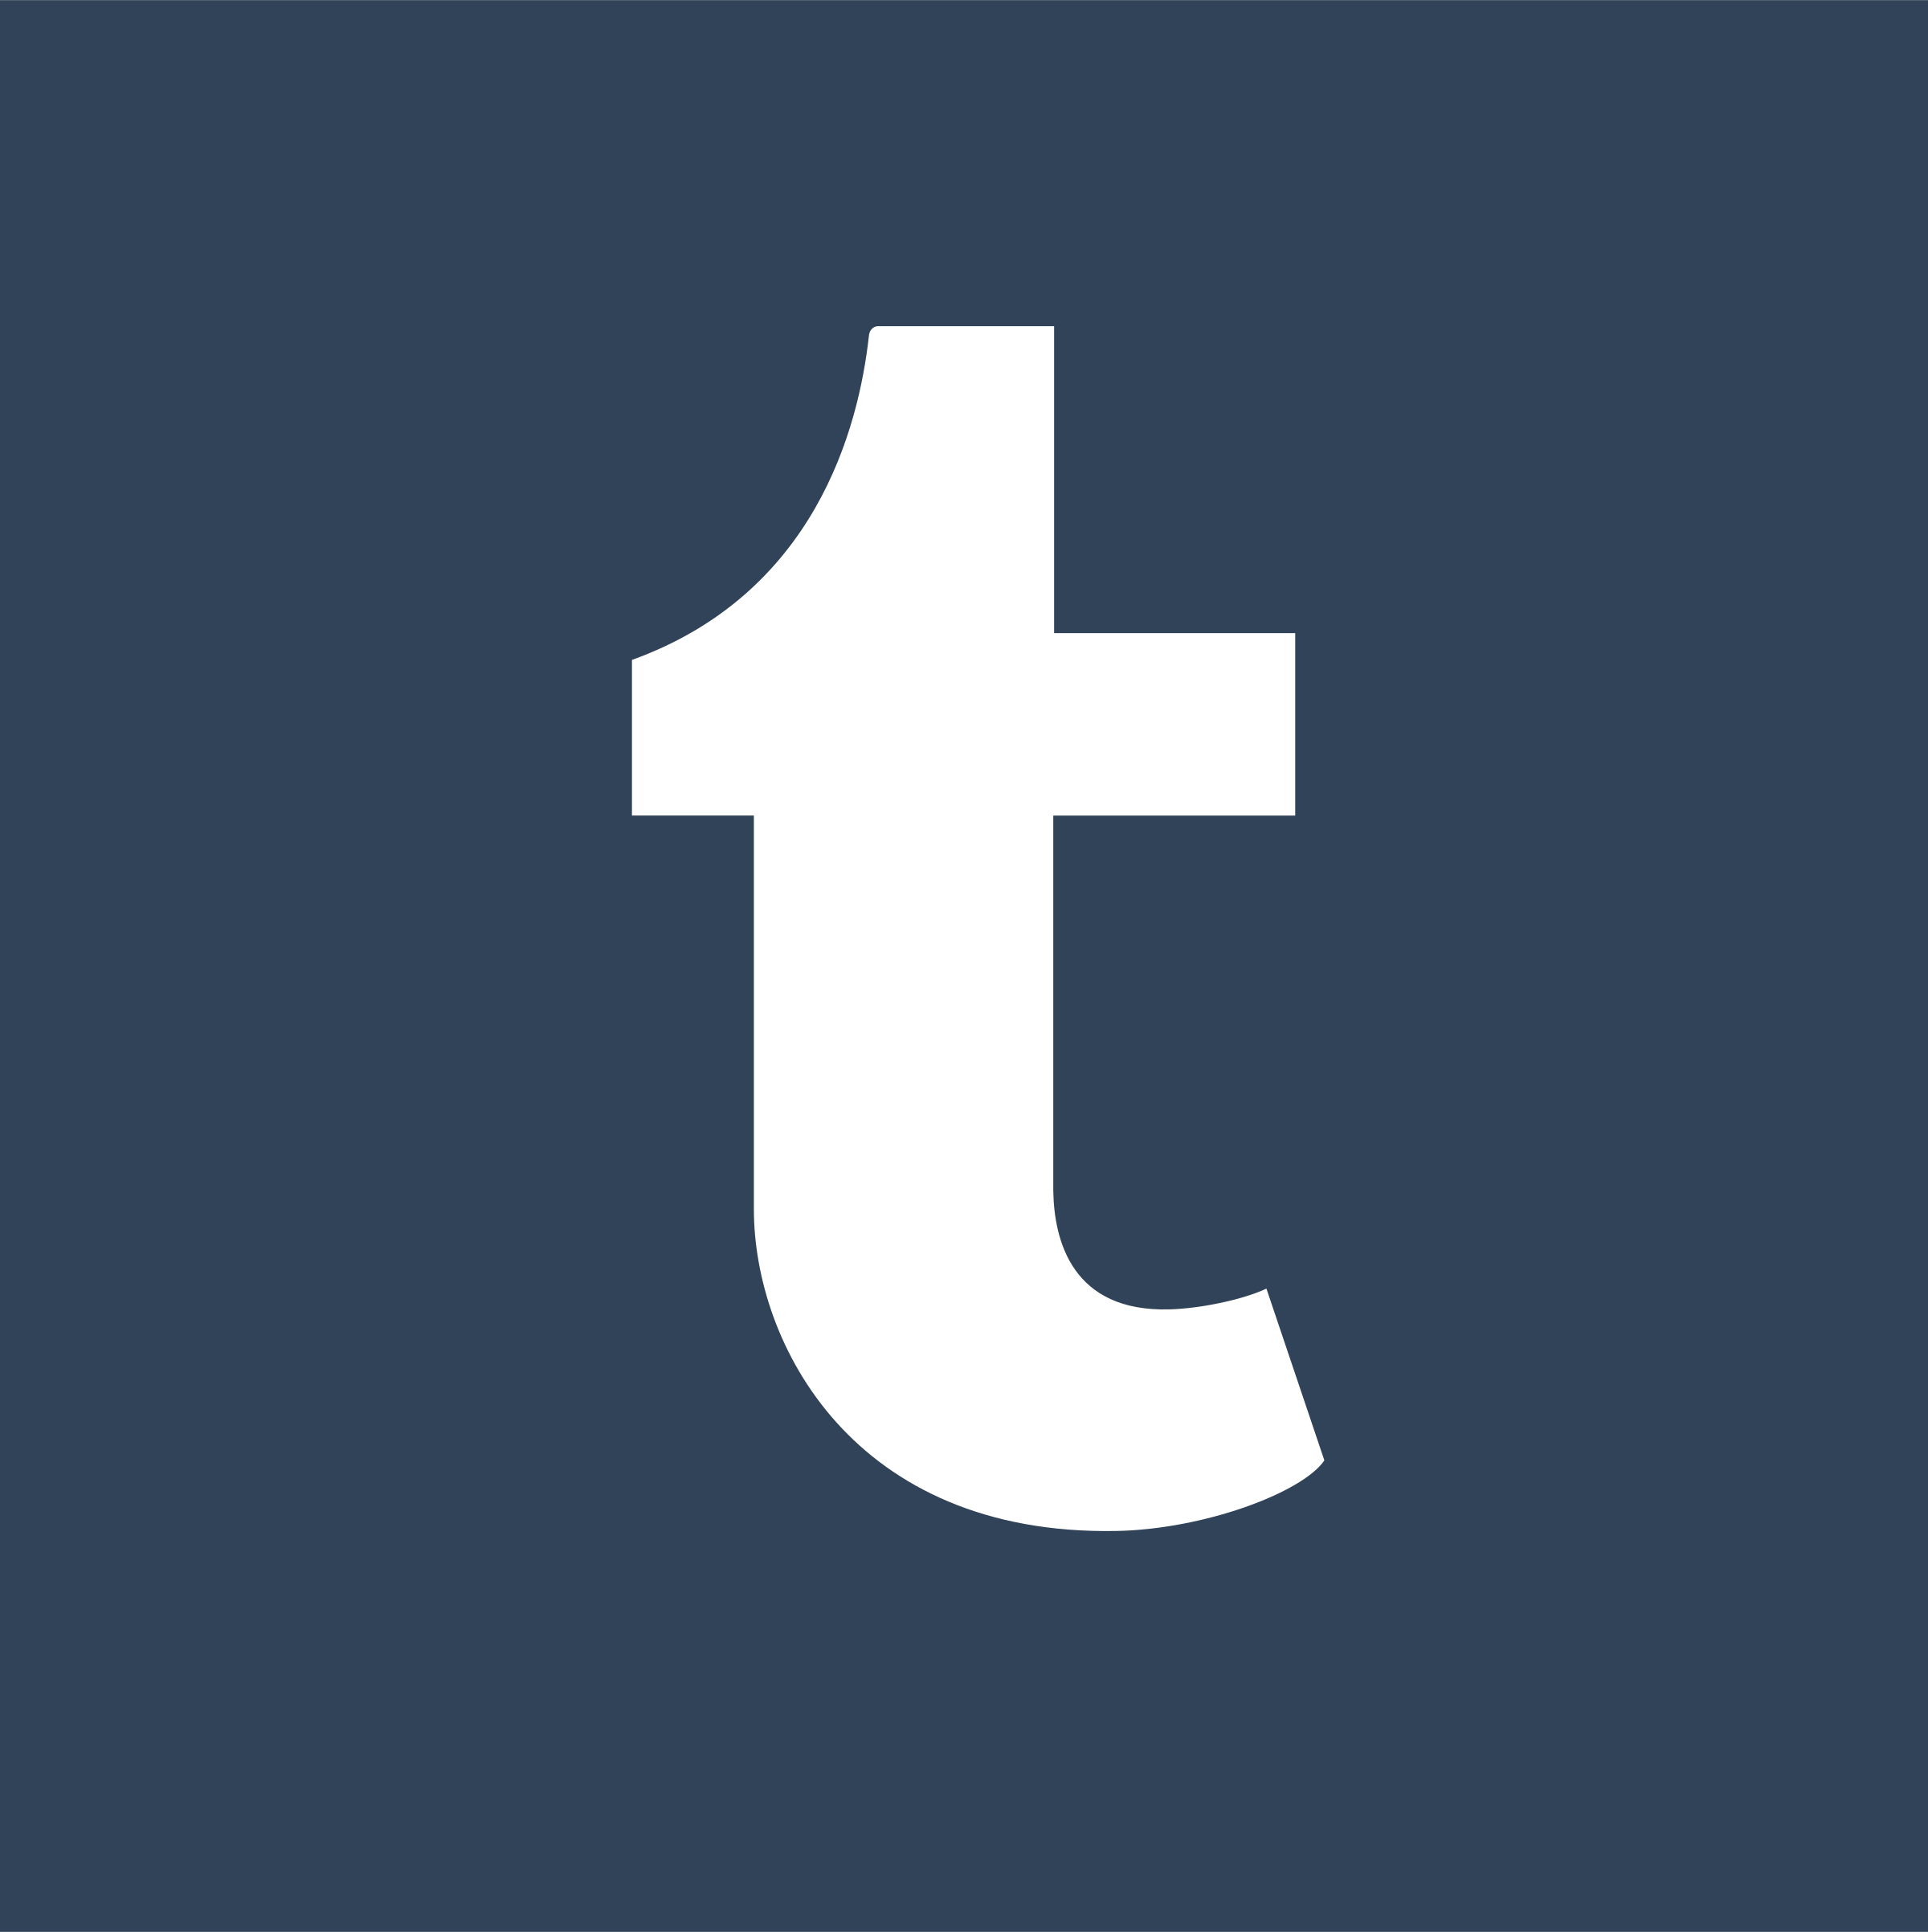 Tumblr Logo - Tumblr icon Logo PNG Transparent & SVG Vector - Freebie Supply